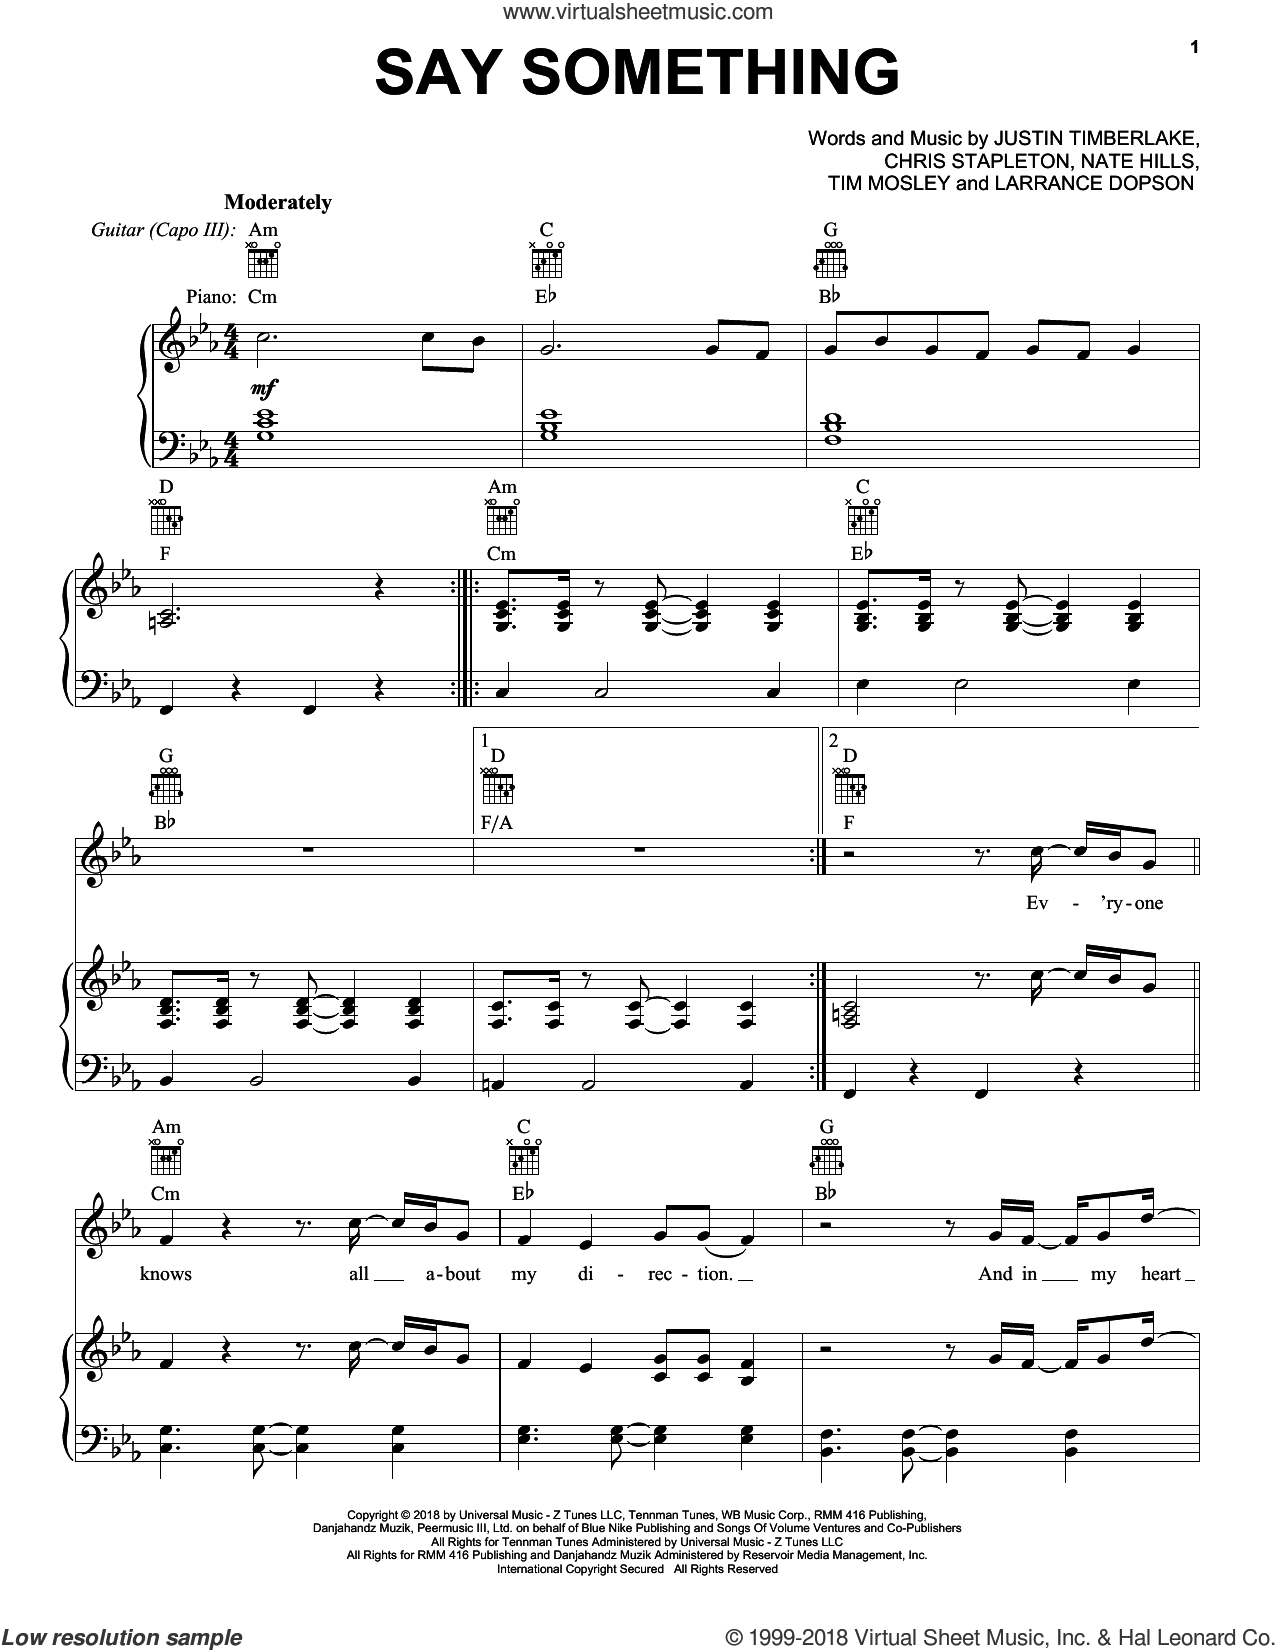 Say Something (feat. Chris Stapleton) sheet music for voice, piano or guitar by Justin Timberlake, Justin Timberlake feat. Chris Stapleton, Chris Stapleton, Larrance Dopson, Nate Hills and Tim Mosley, intermediate skill level